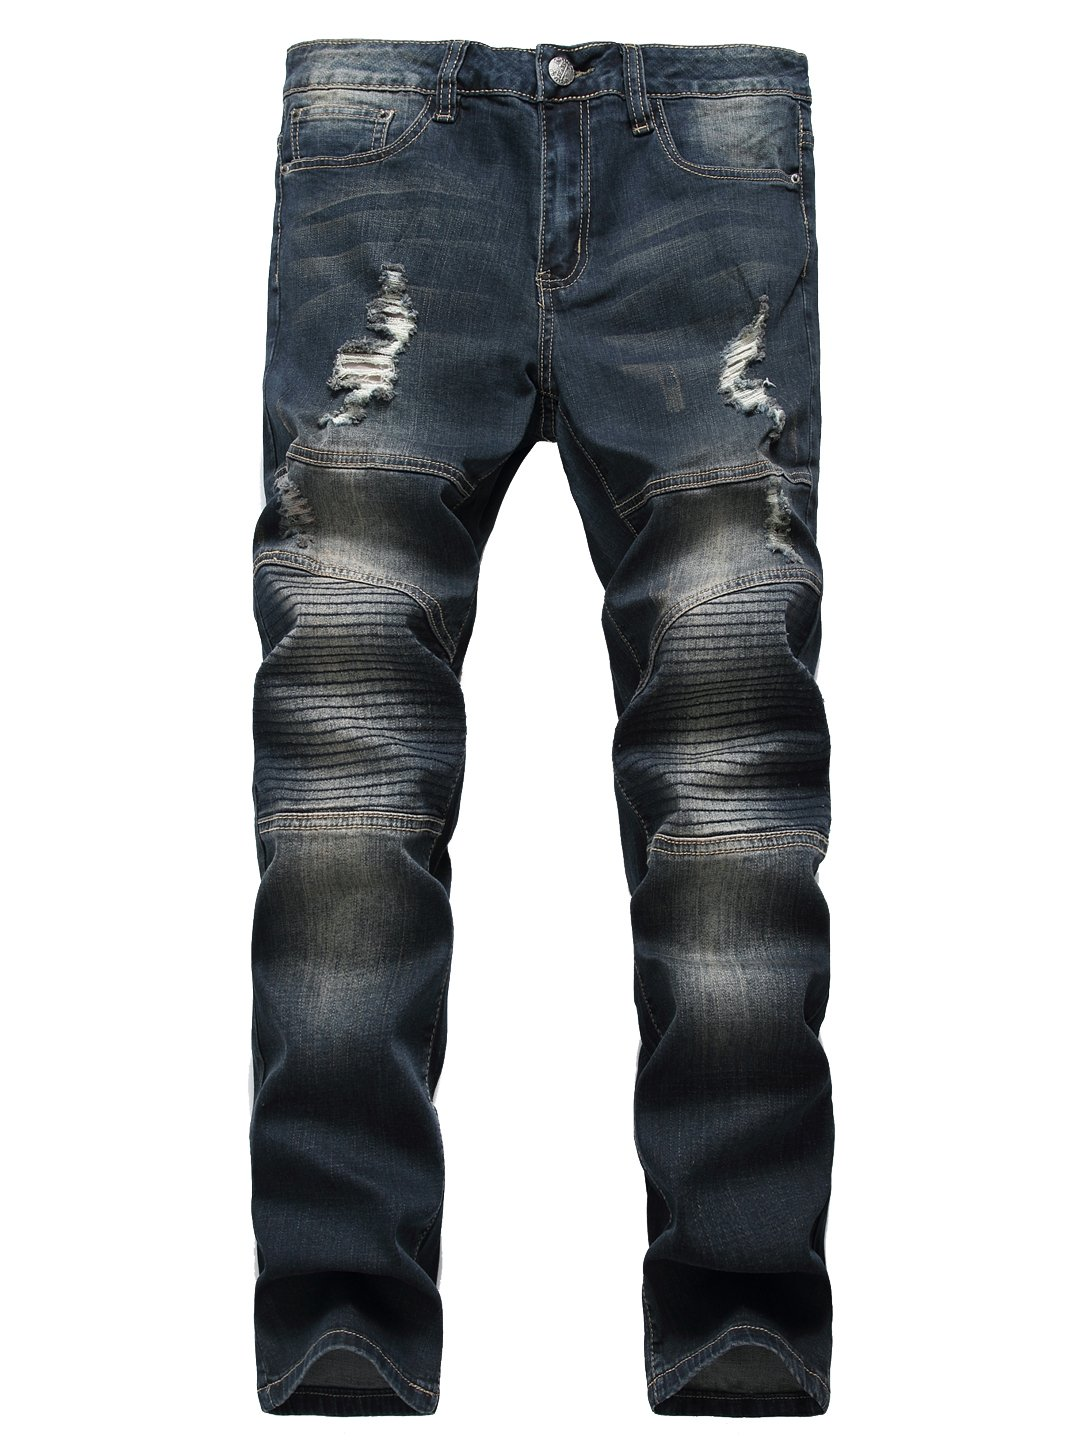 TUNGLUNG Men's Straight Slim Fit Motorcylce Jeans with Holes Dark Blue 28